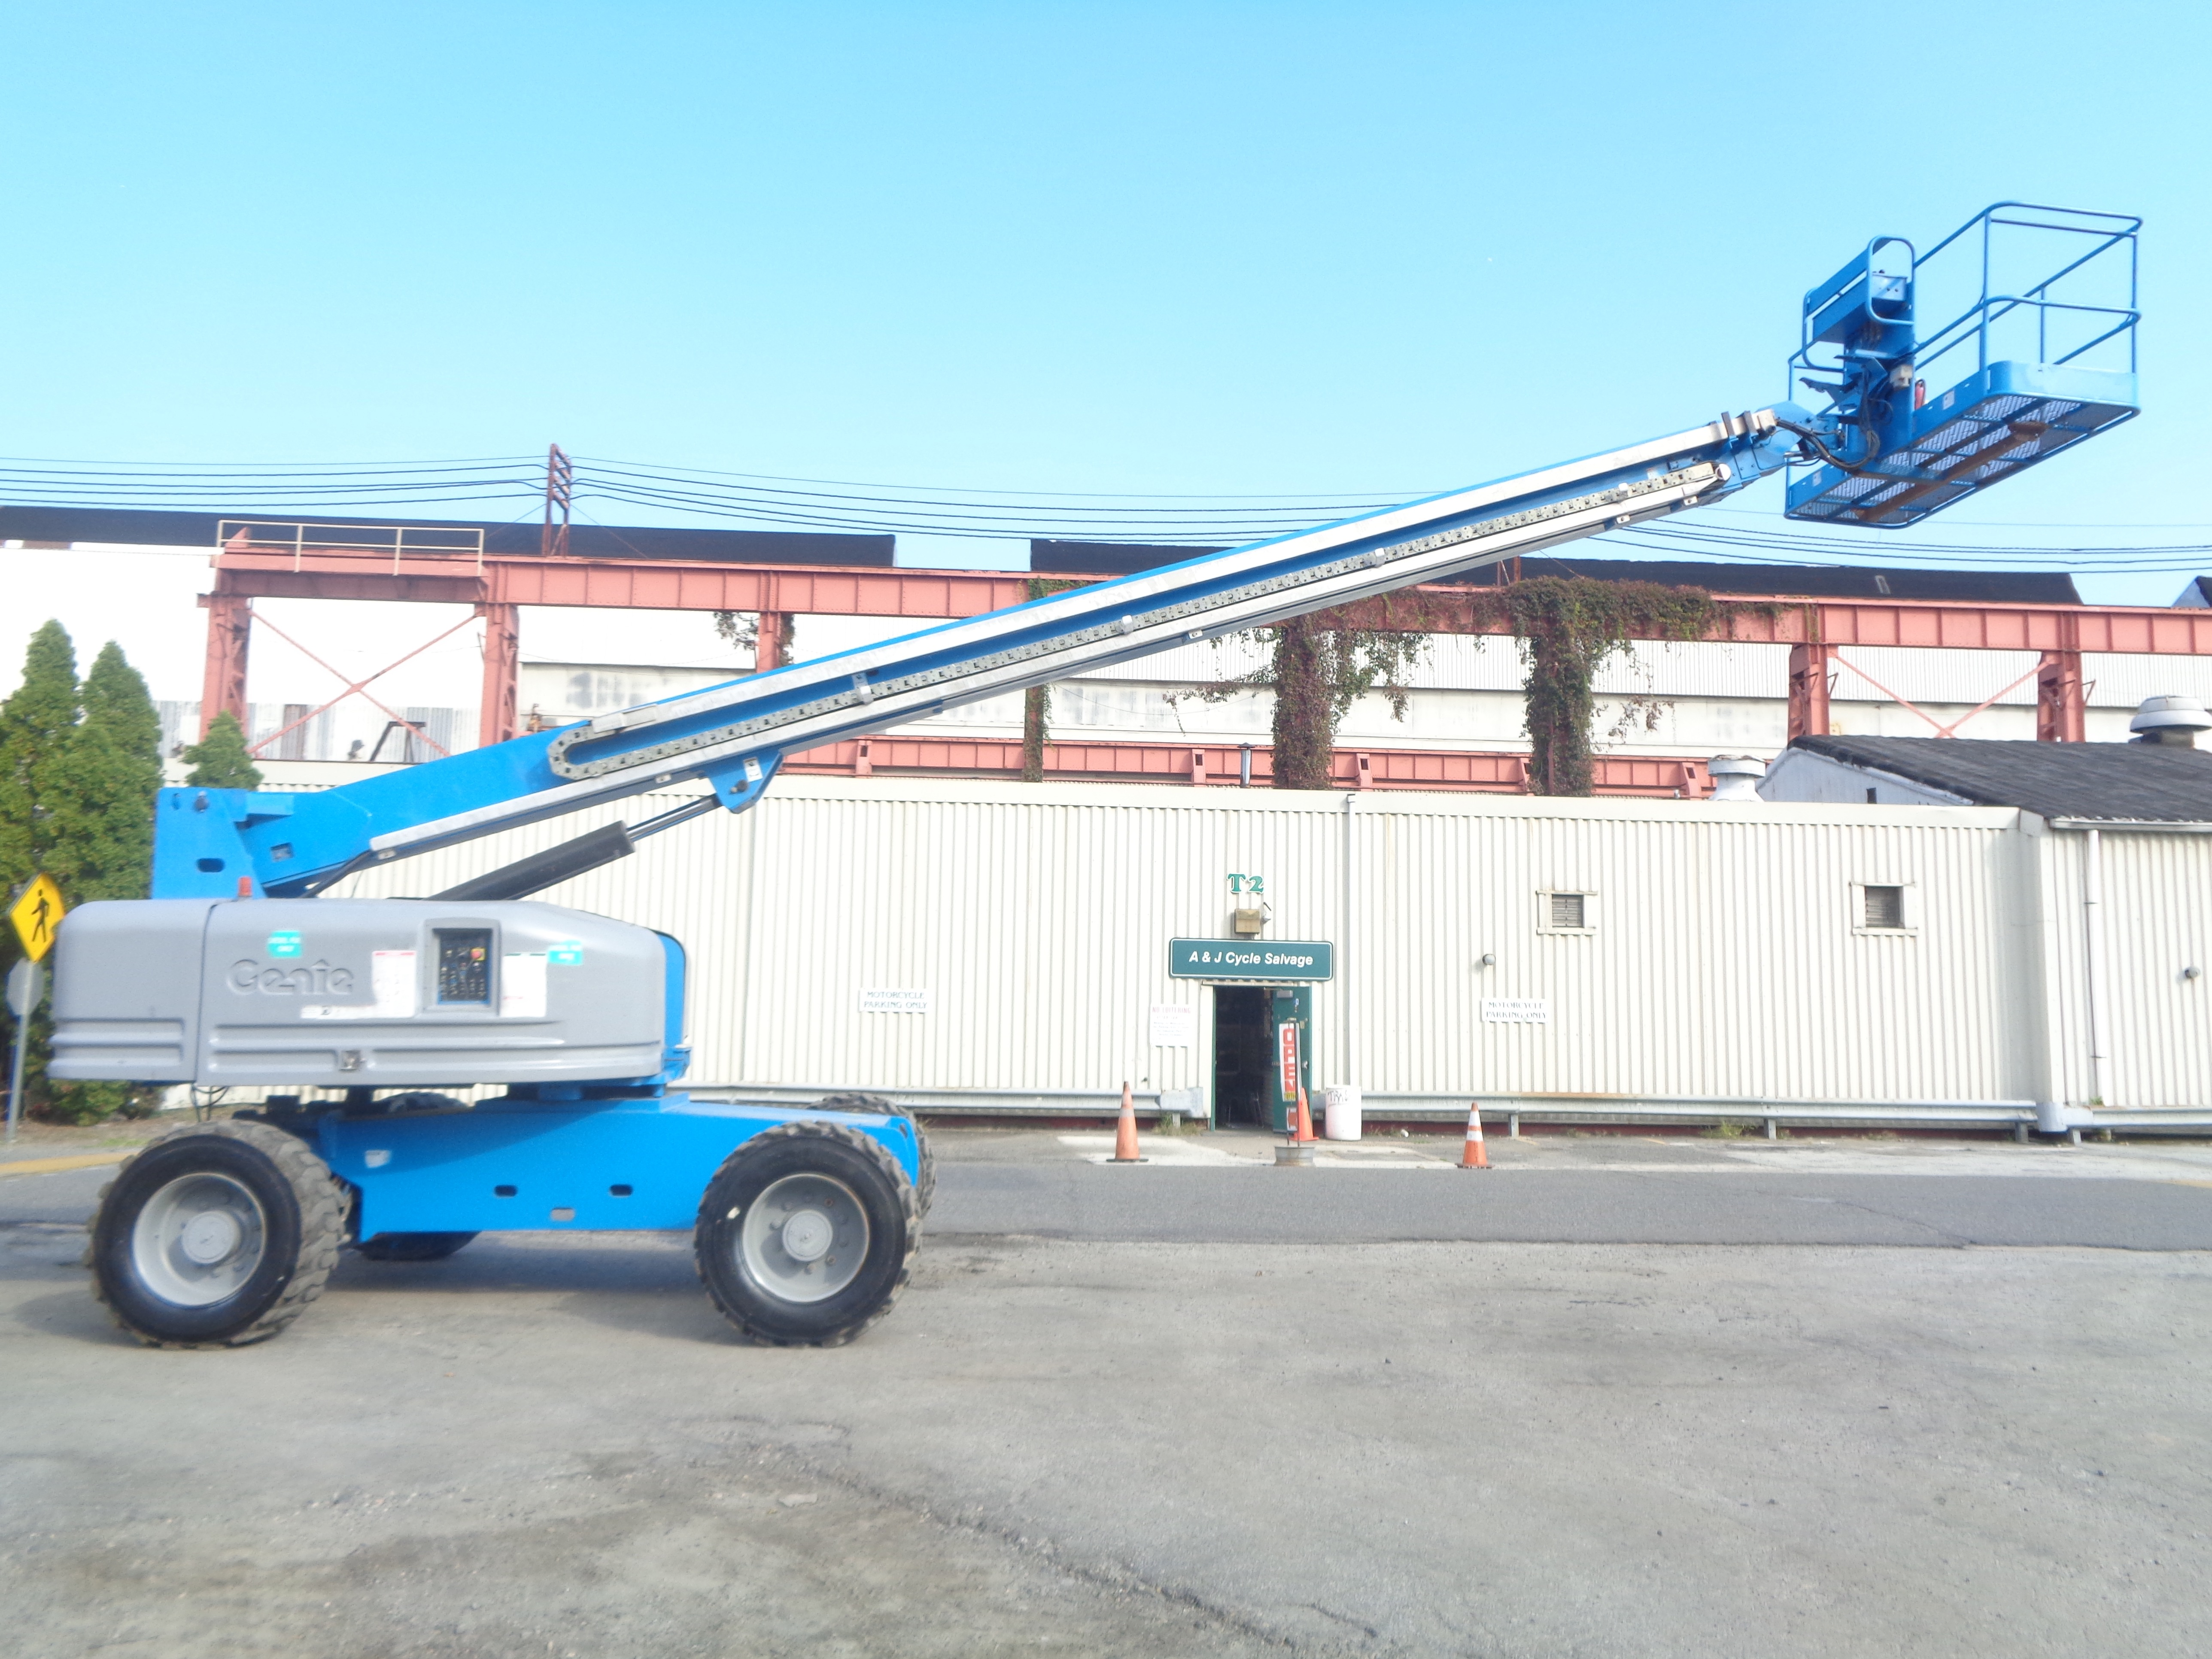 Genie S80 80ft Boom Lift - Image 15 of 22